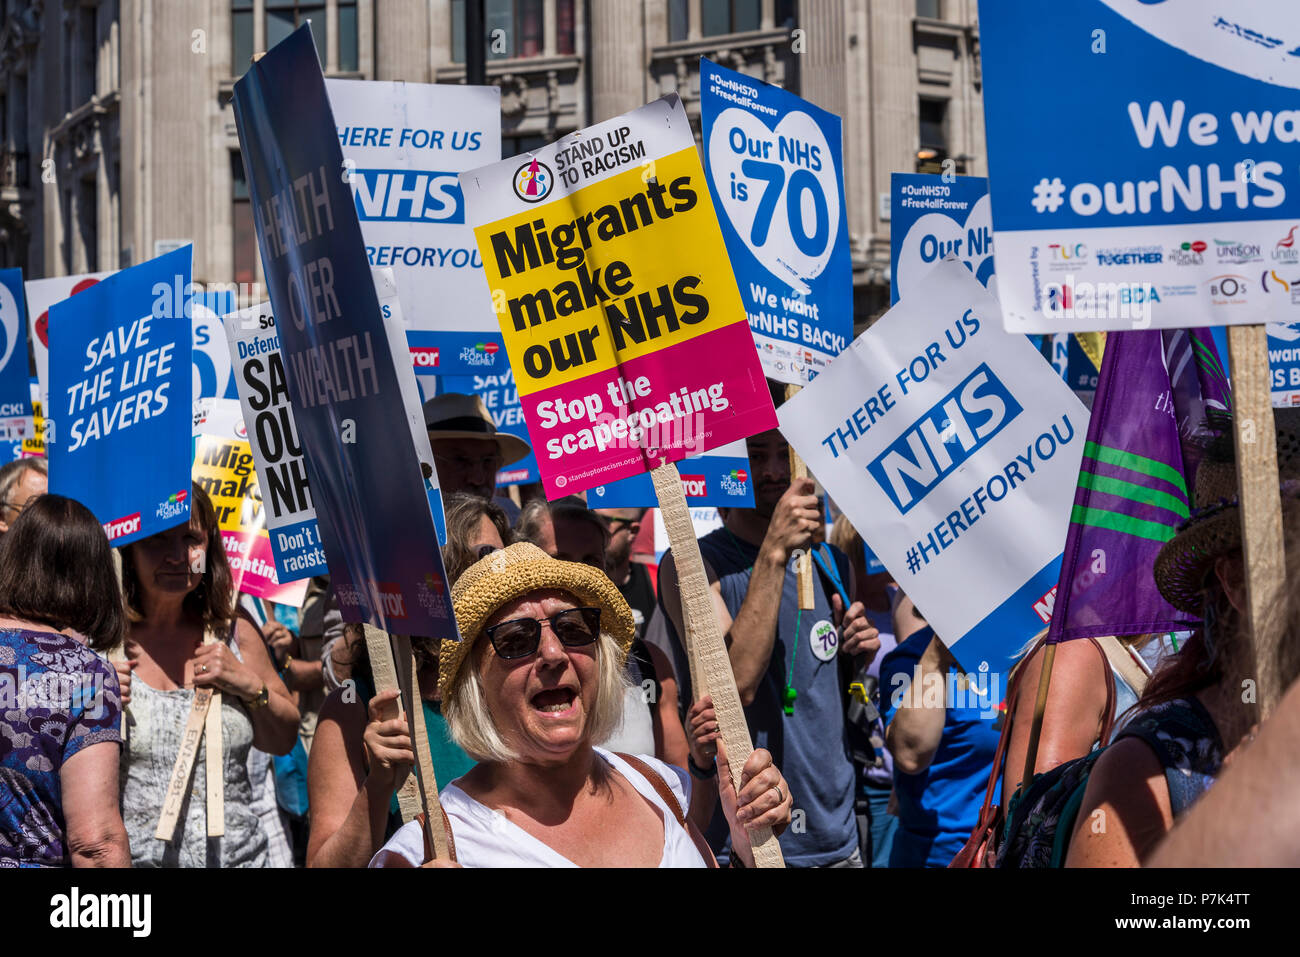 NHS 70th Anniversary March organised by People's Assembly, Migrants make our NHS, London, UK, 30/06/2018 - Stock Image